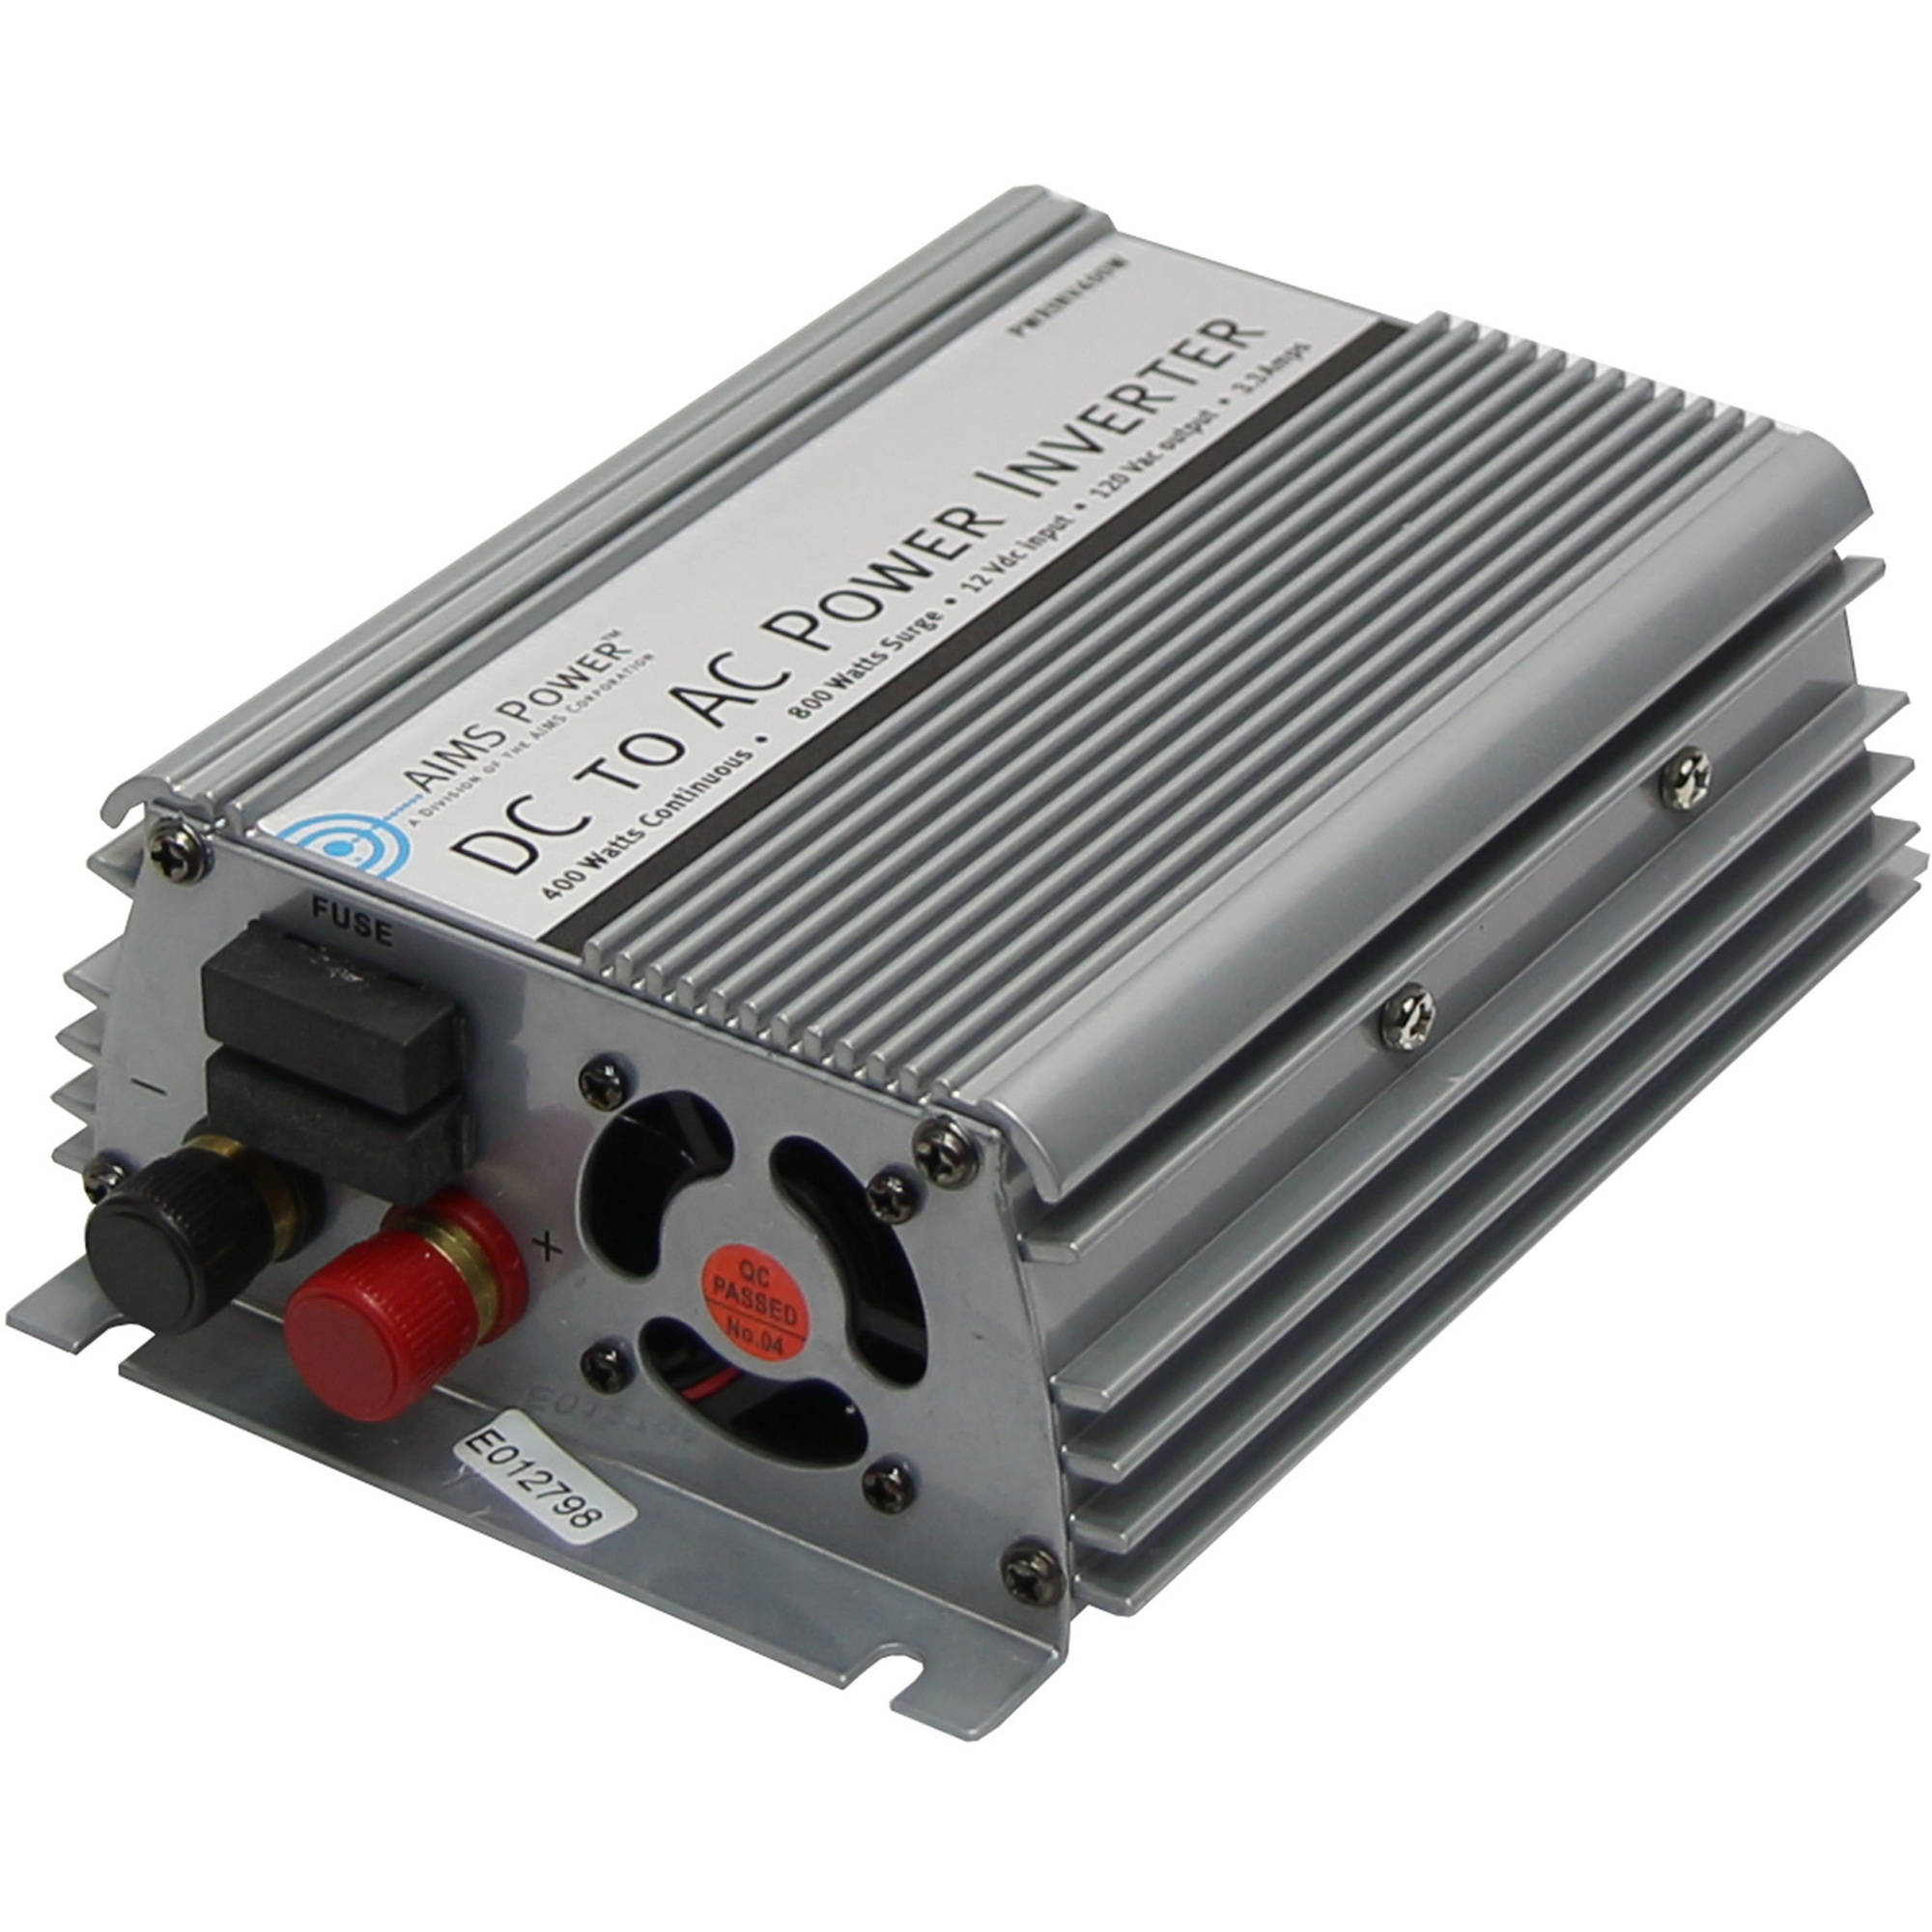 AIMS Power 400 Watt 12V Modified Sine Inverter with Cables